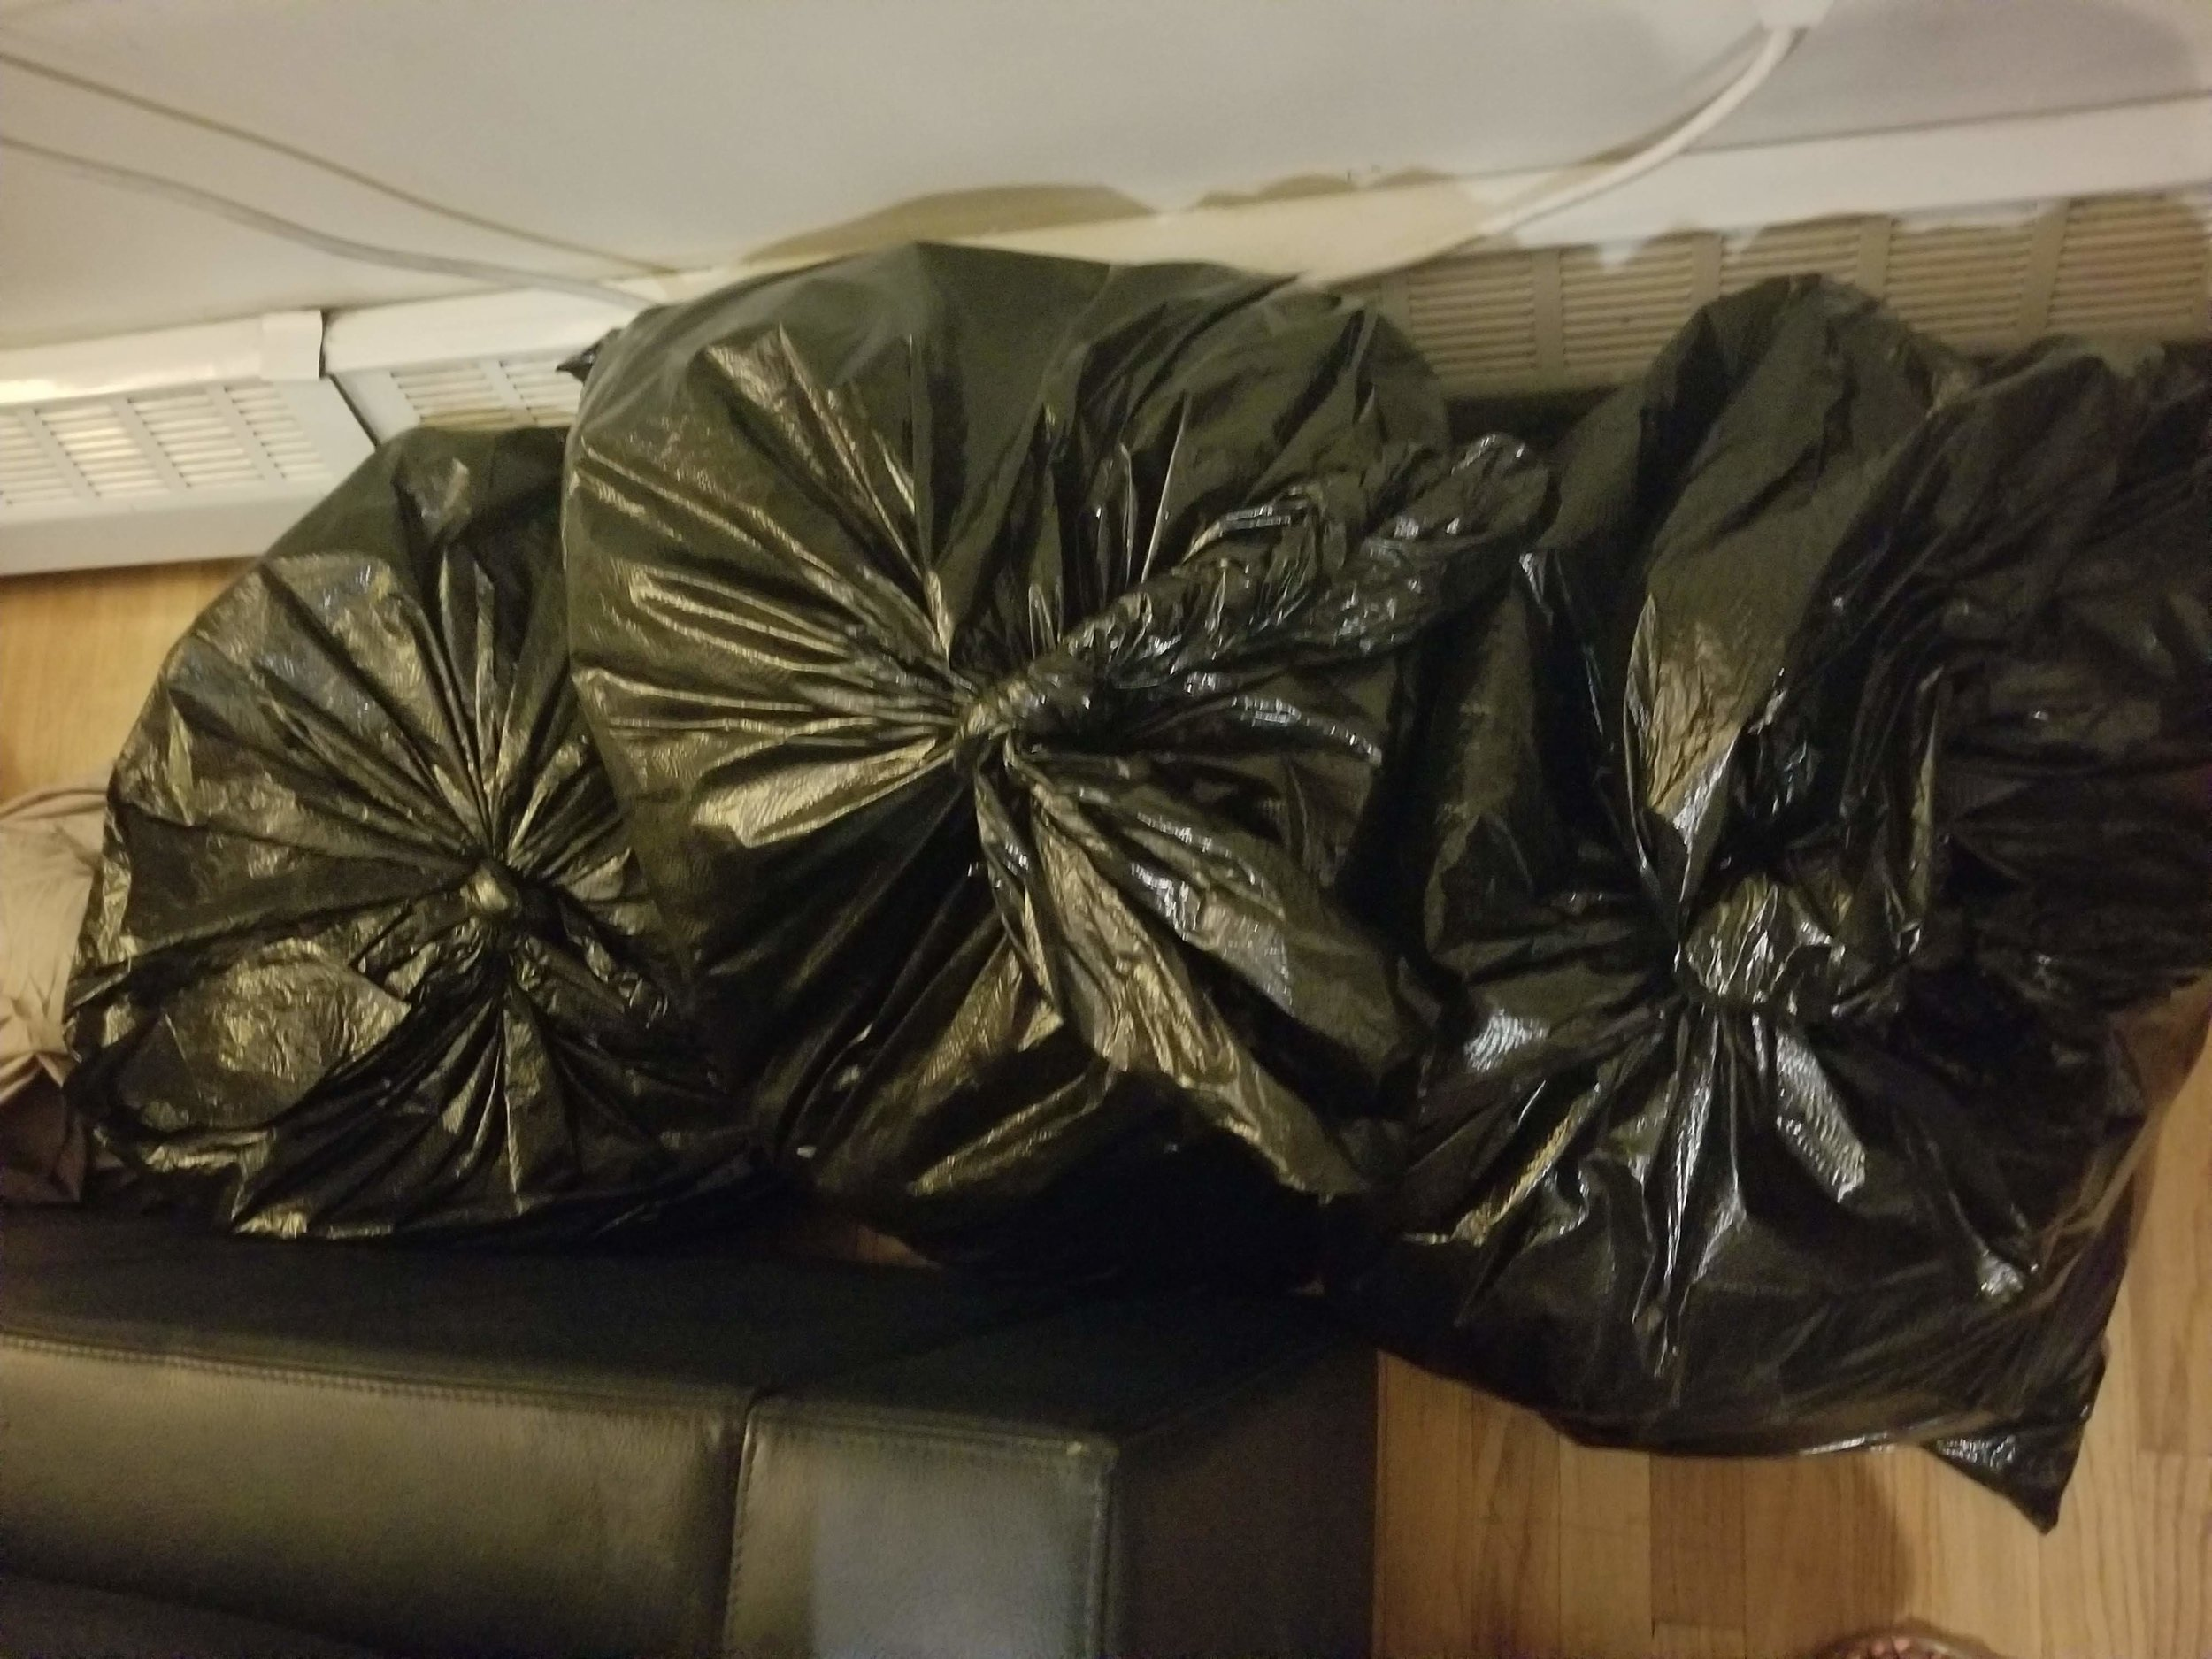 Purged Clothing for Donations